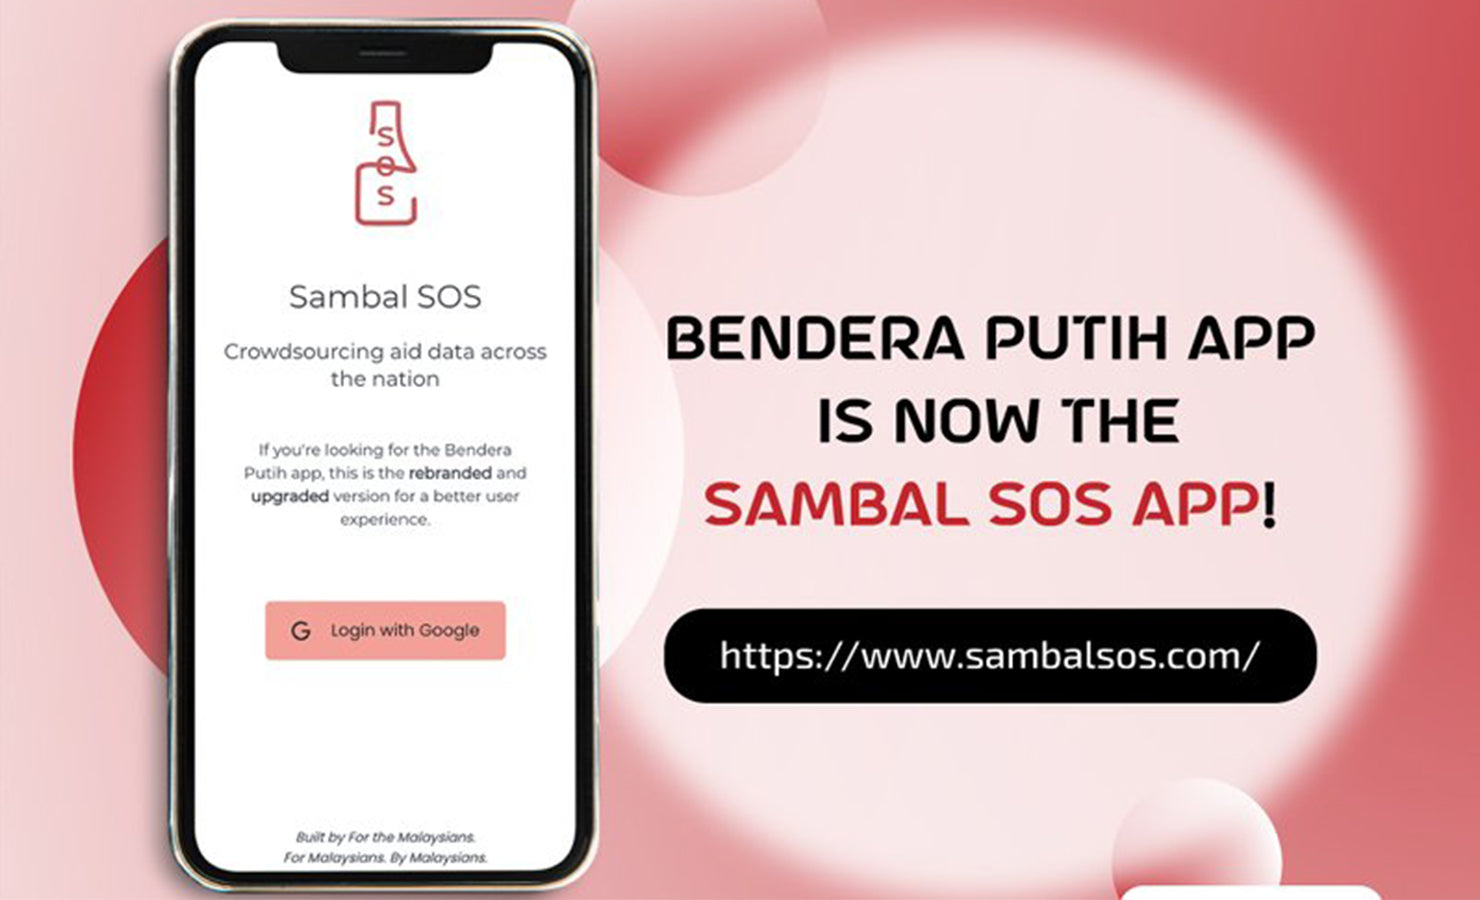 bloomthis-malaysian-things-you-didnt-know-2021-06-sambal-sos